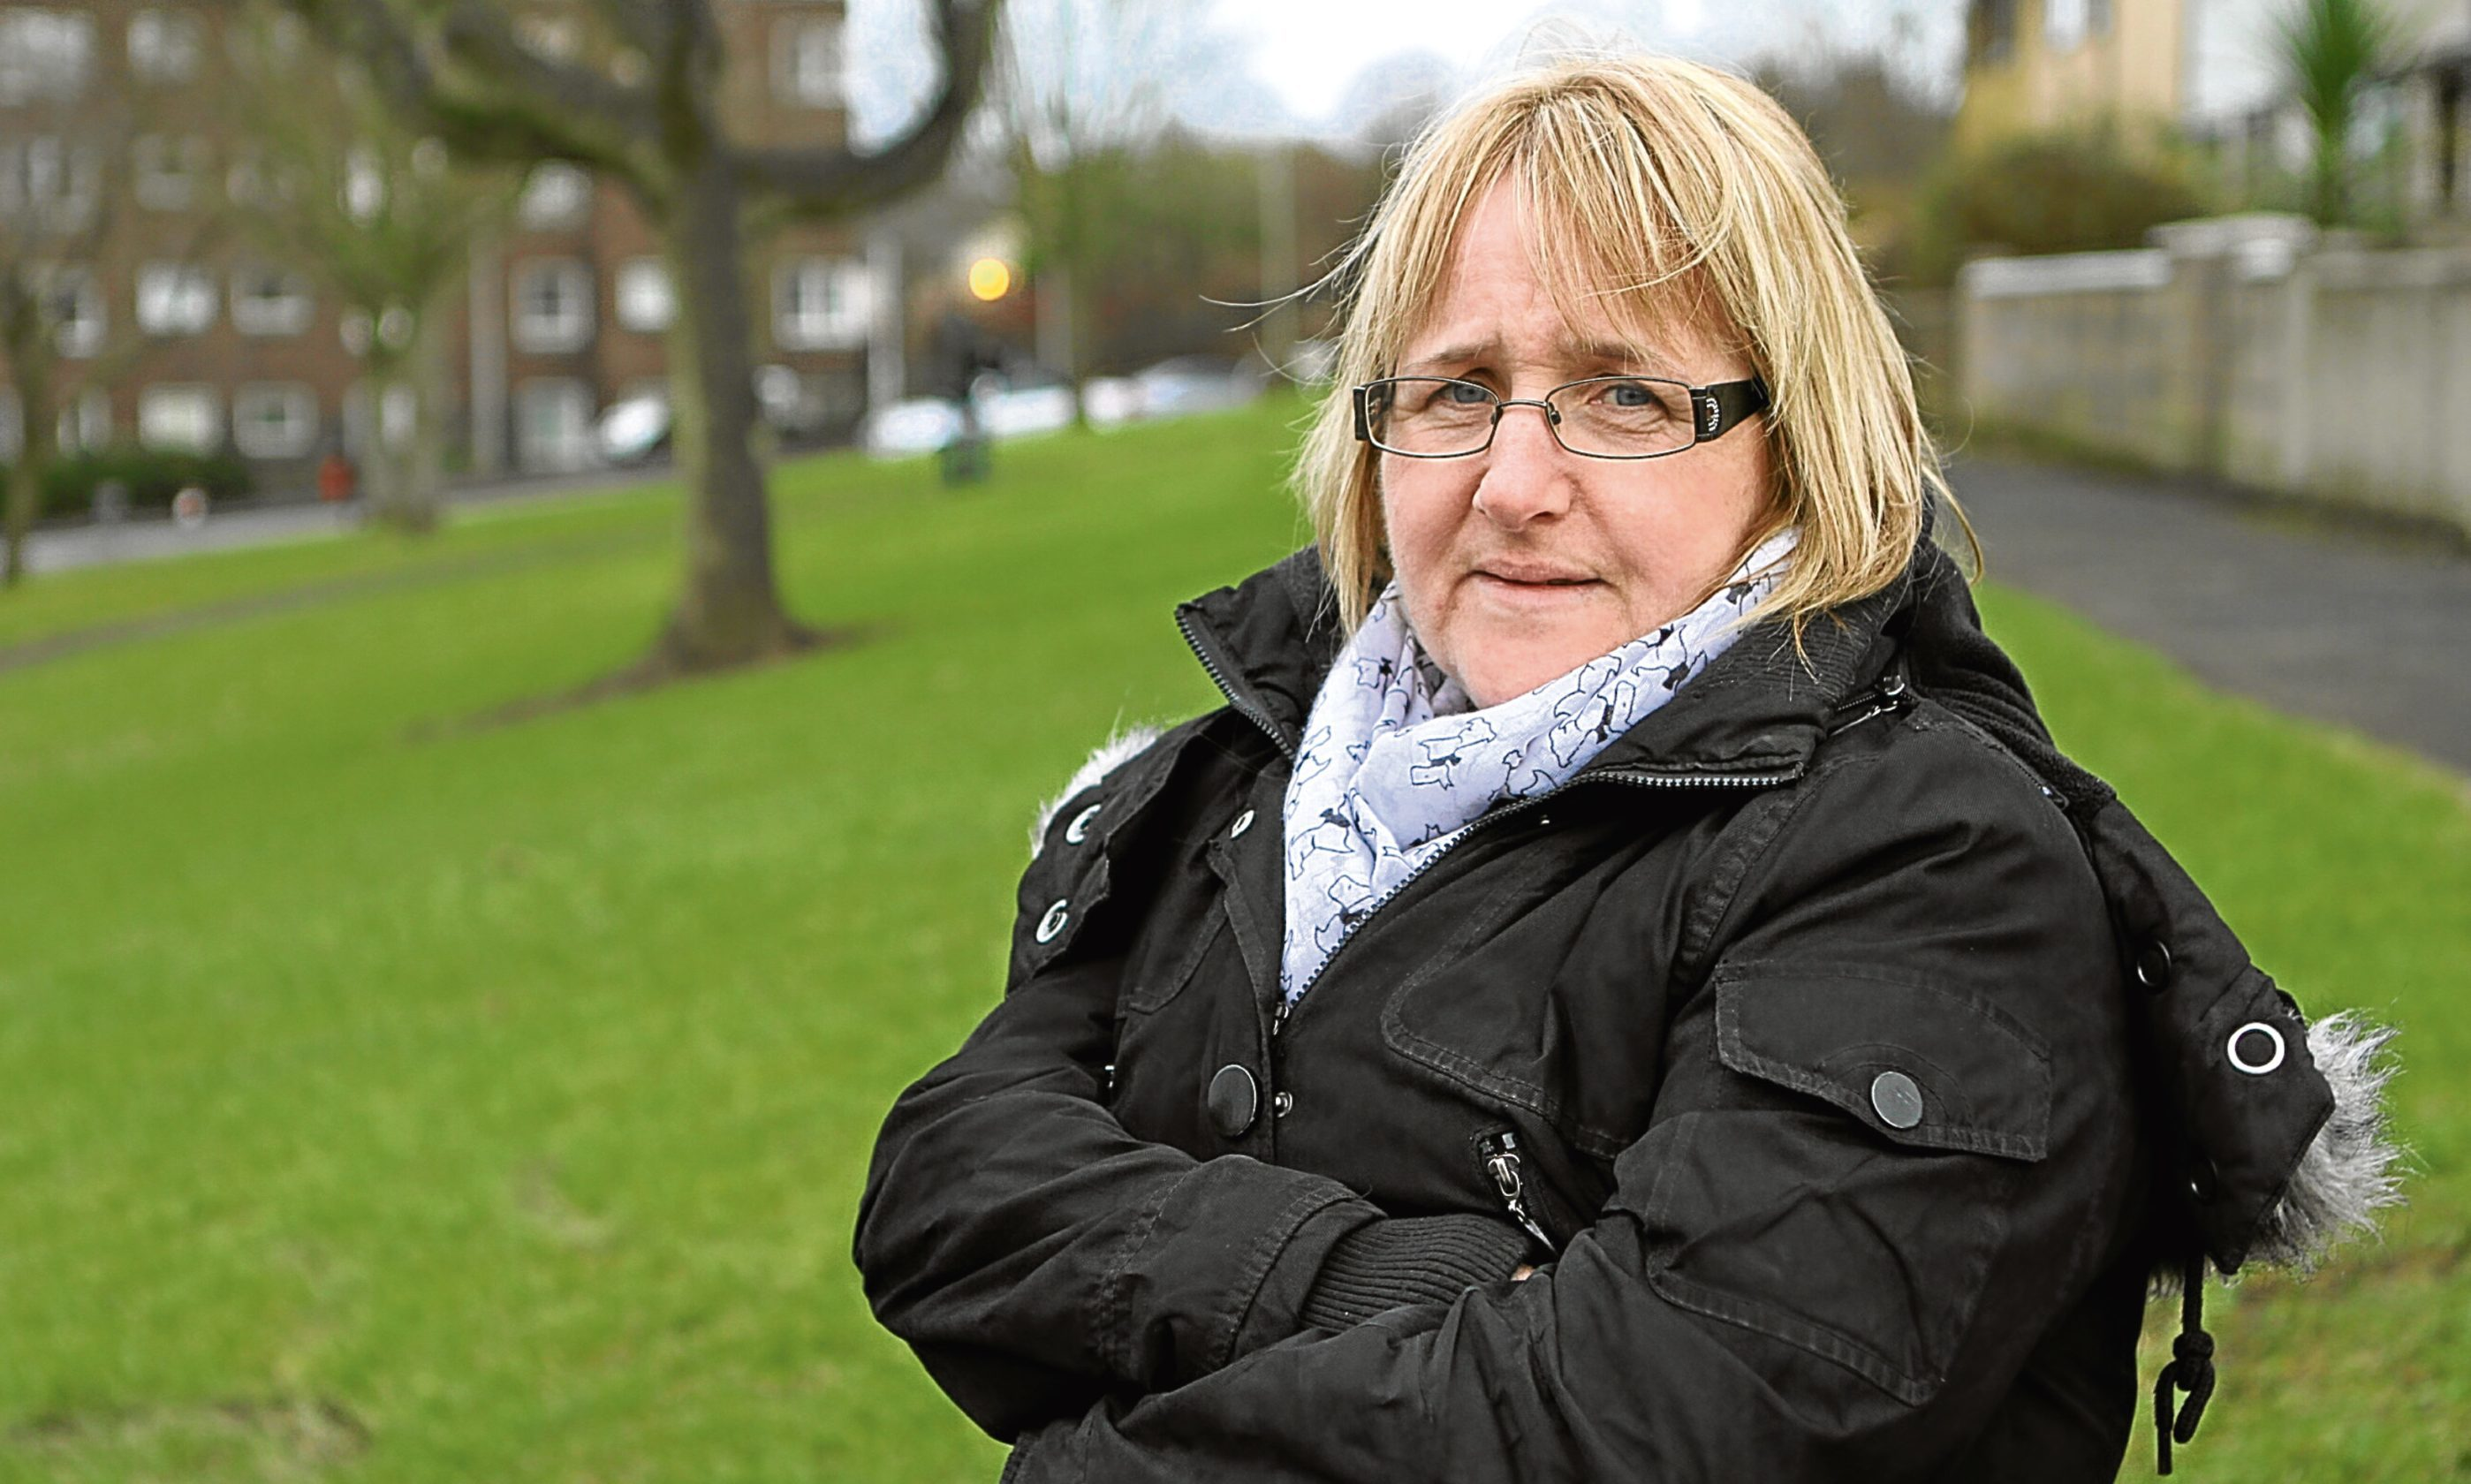 Catherine Hegarty, who started an online petition to keep the cashiers at the Asda Kirkton petrol station